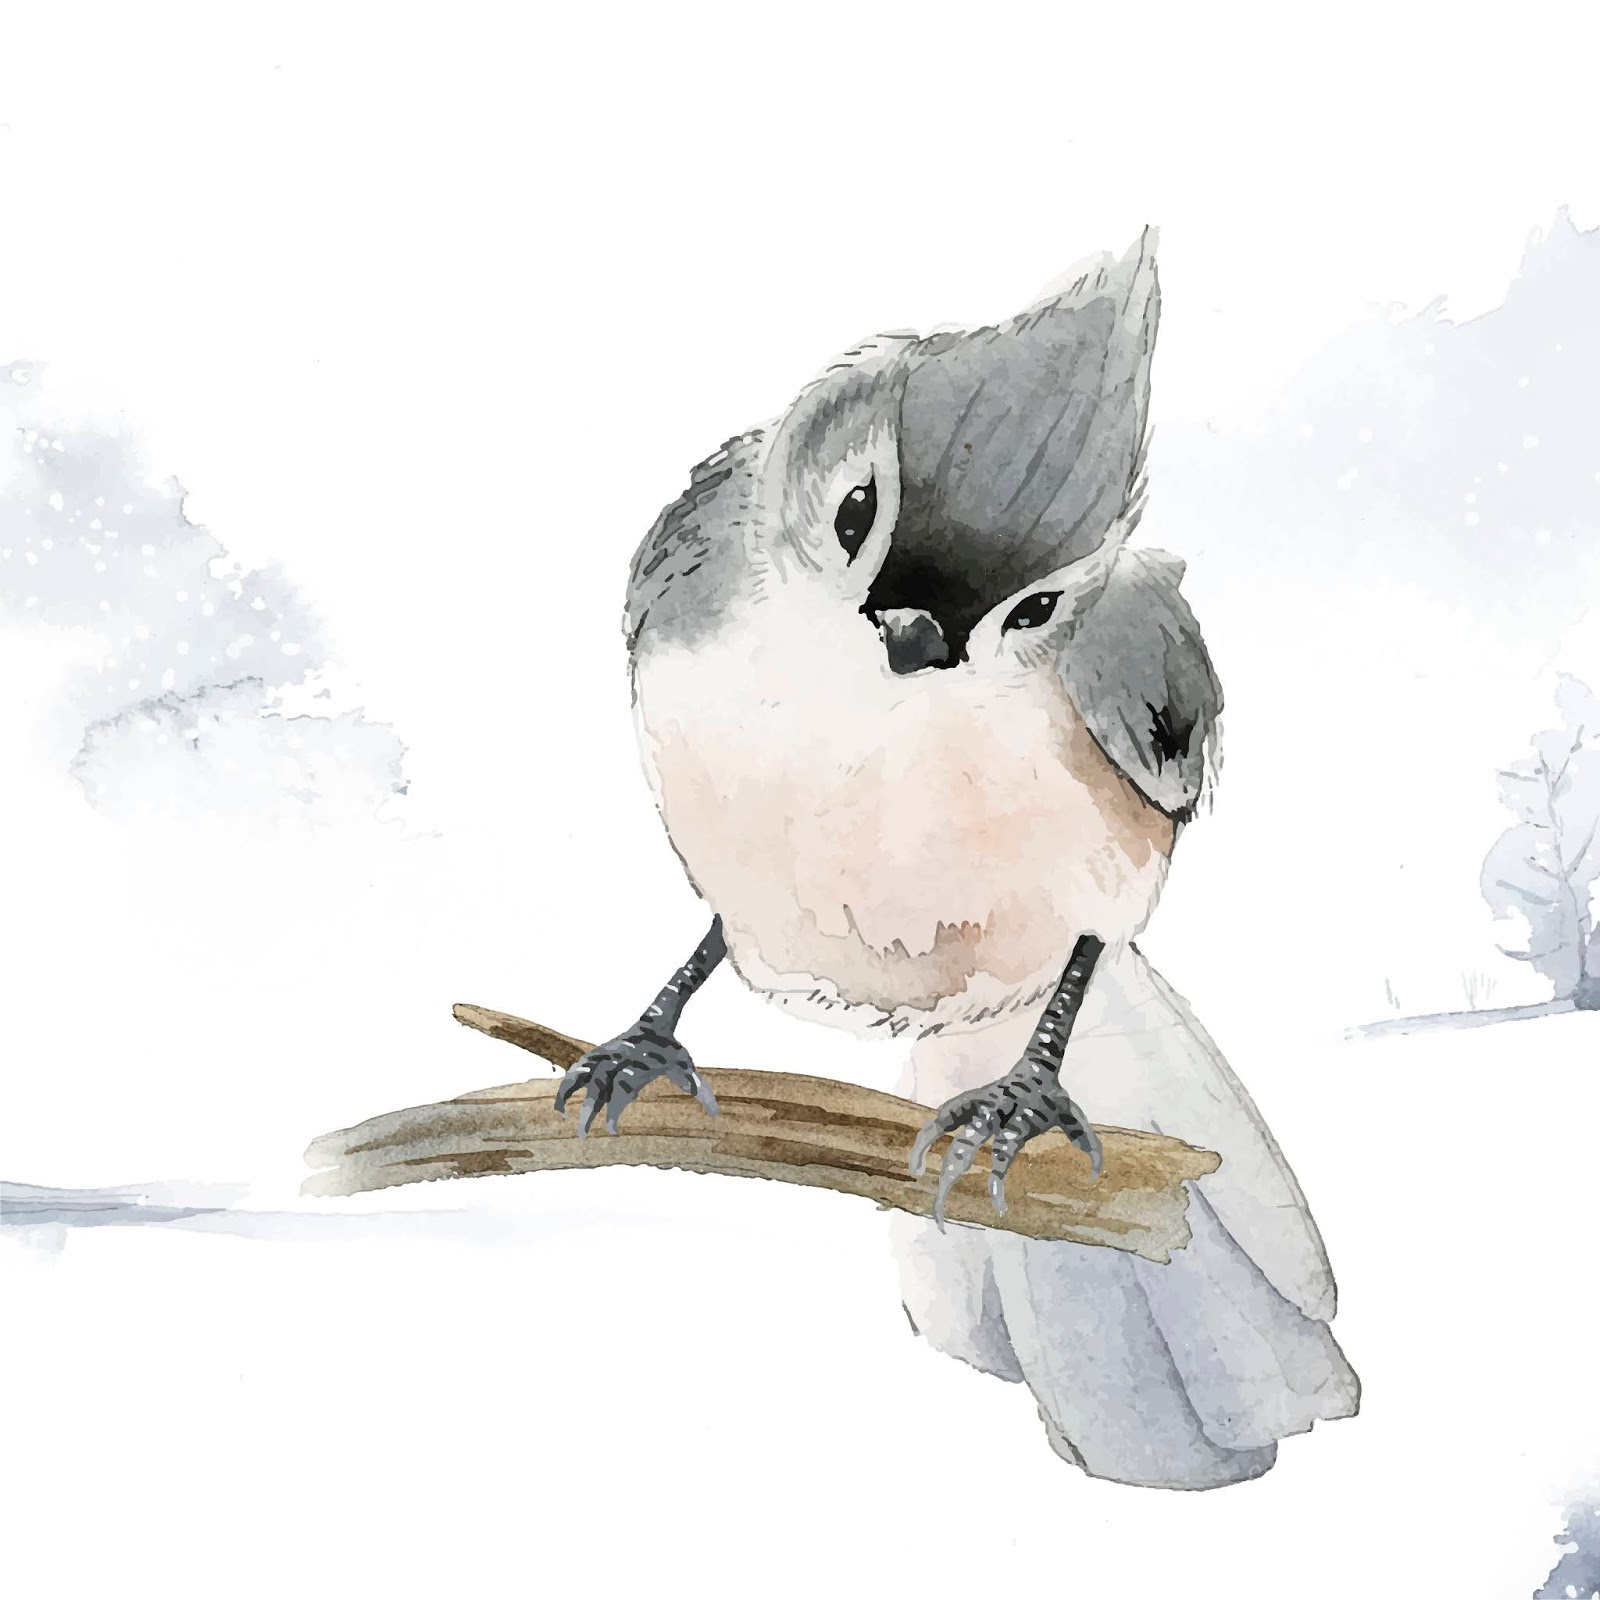 Tufted Titmouse Bird Wintertime Watercolor Vector (1) Free Download Vector CDR, AI, EPS and PNG Formats